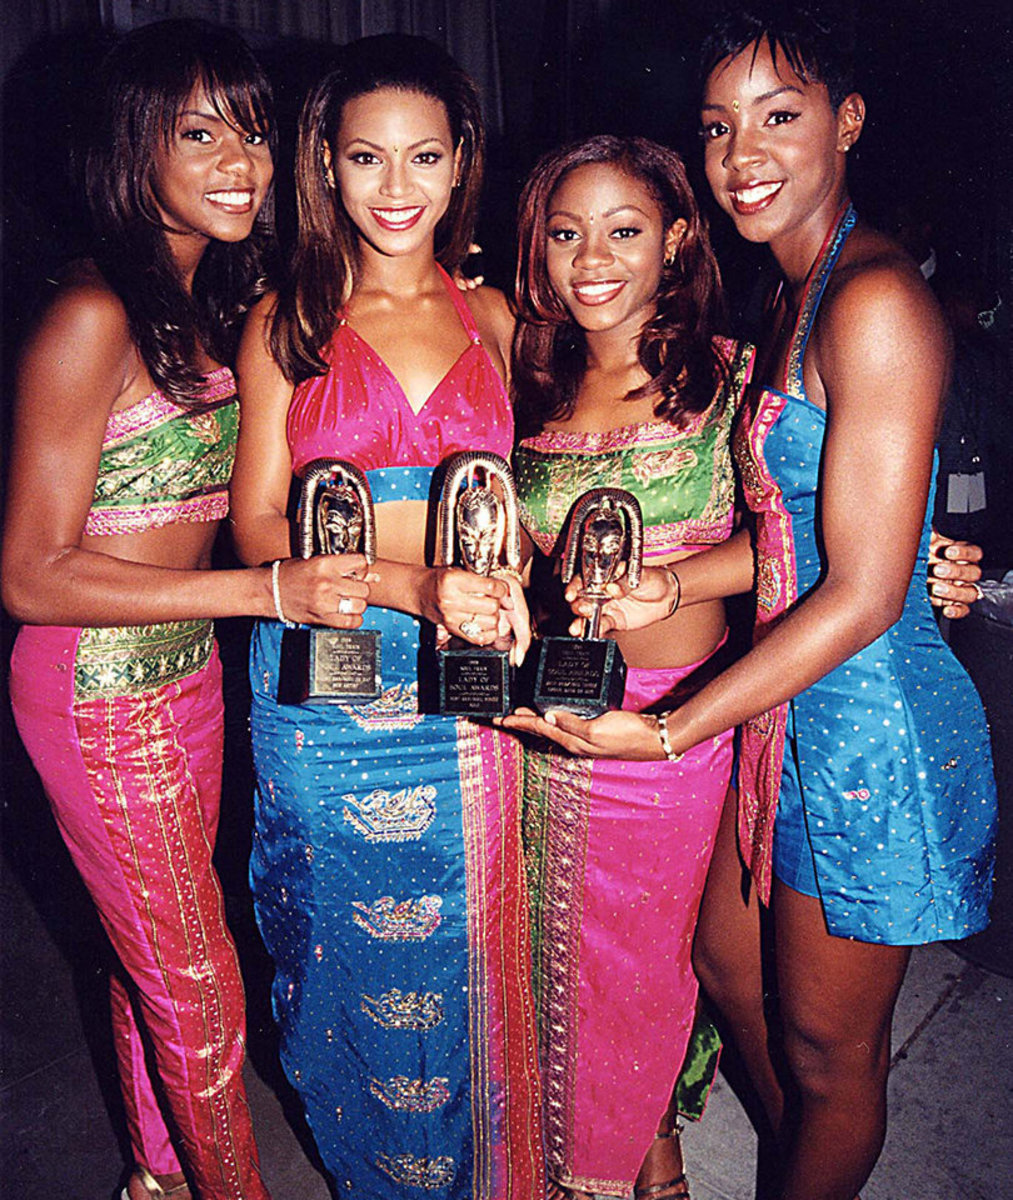 The original Destiny's Child foursome. Hopefully we'll one day see a reunion with Letoya, Latavia, Michelle, Beyonce and Kelly.